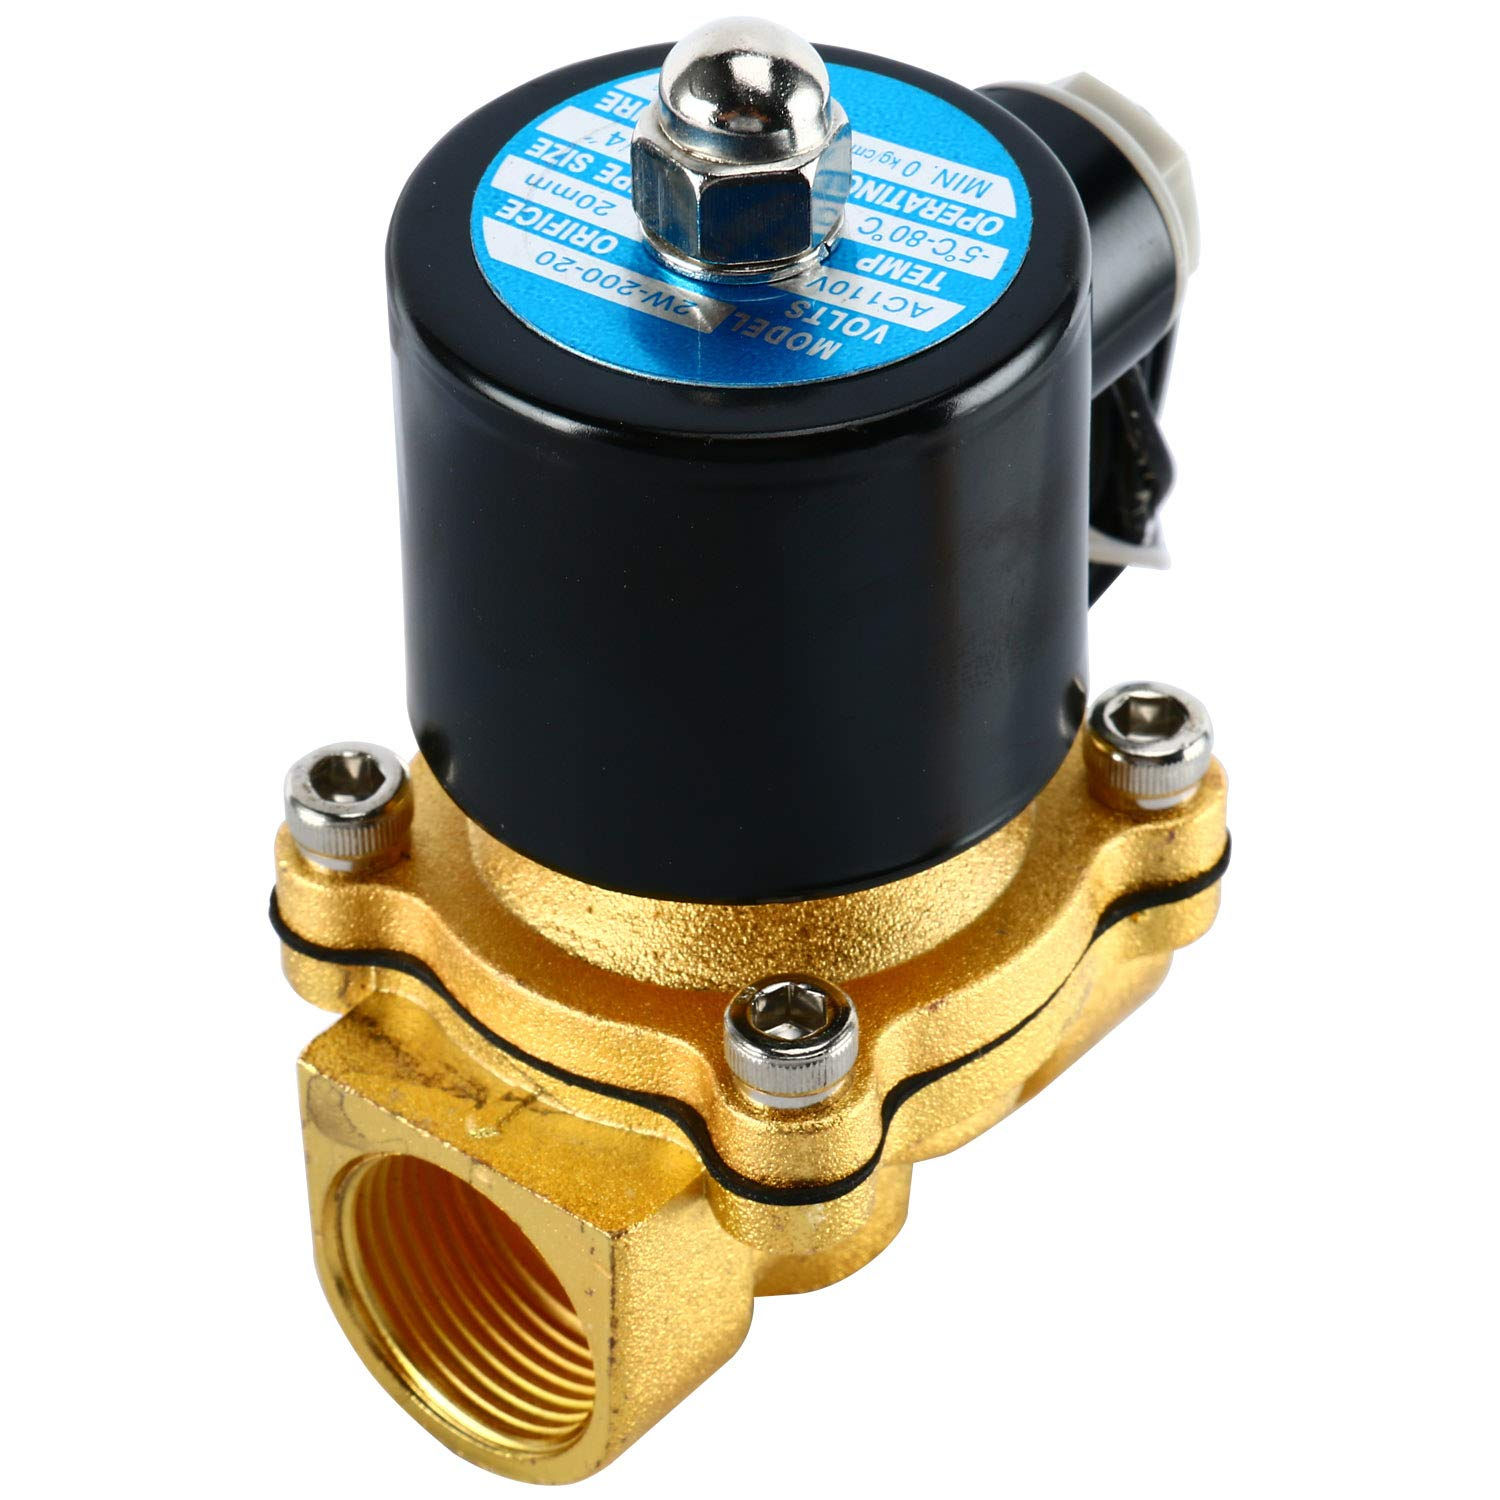 3//4 Brass Homend 3//4 NPT AC110V Brass Electric Solenoid Valve Normally Closed Water Oil Air Gas Two-Position Two-Way Solenoid Valve